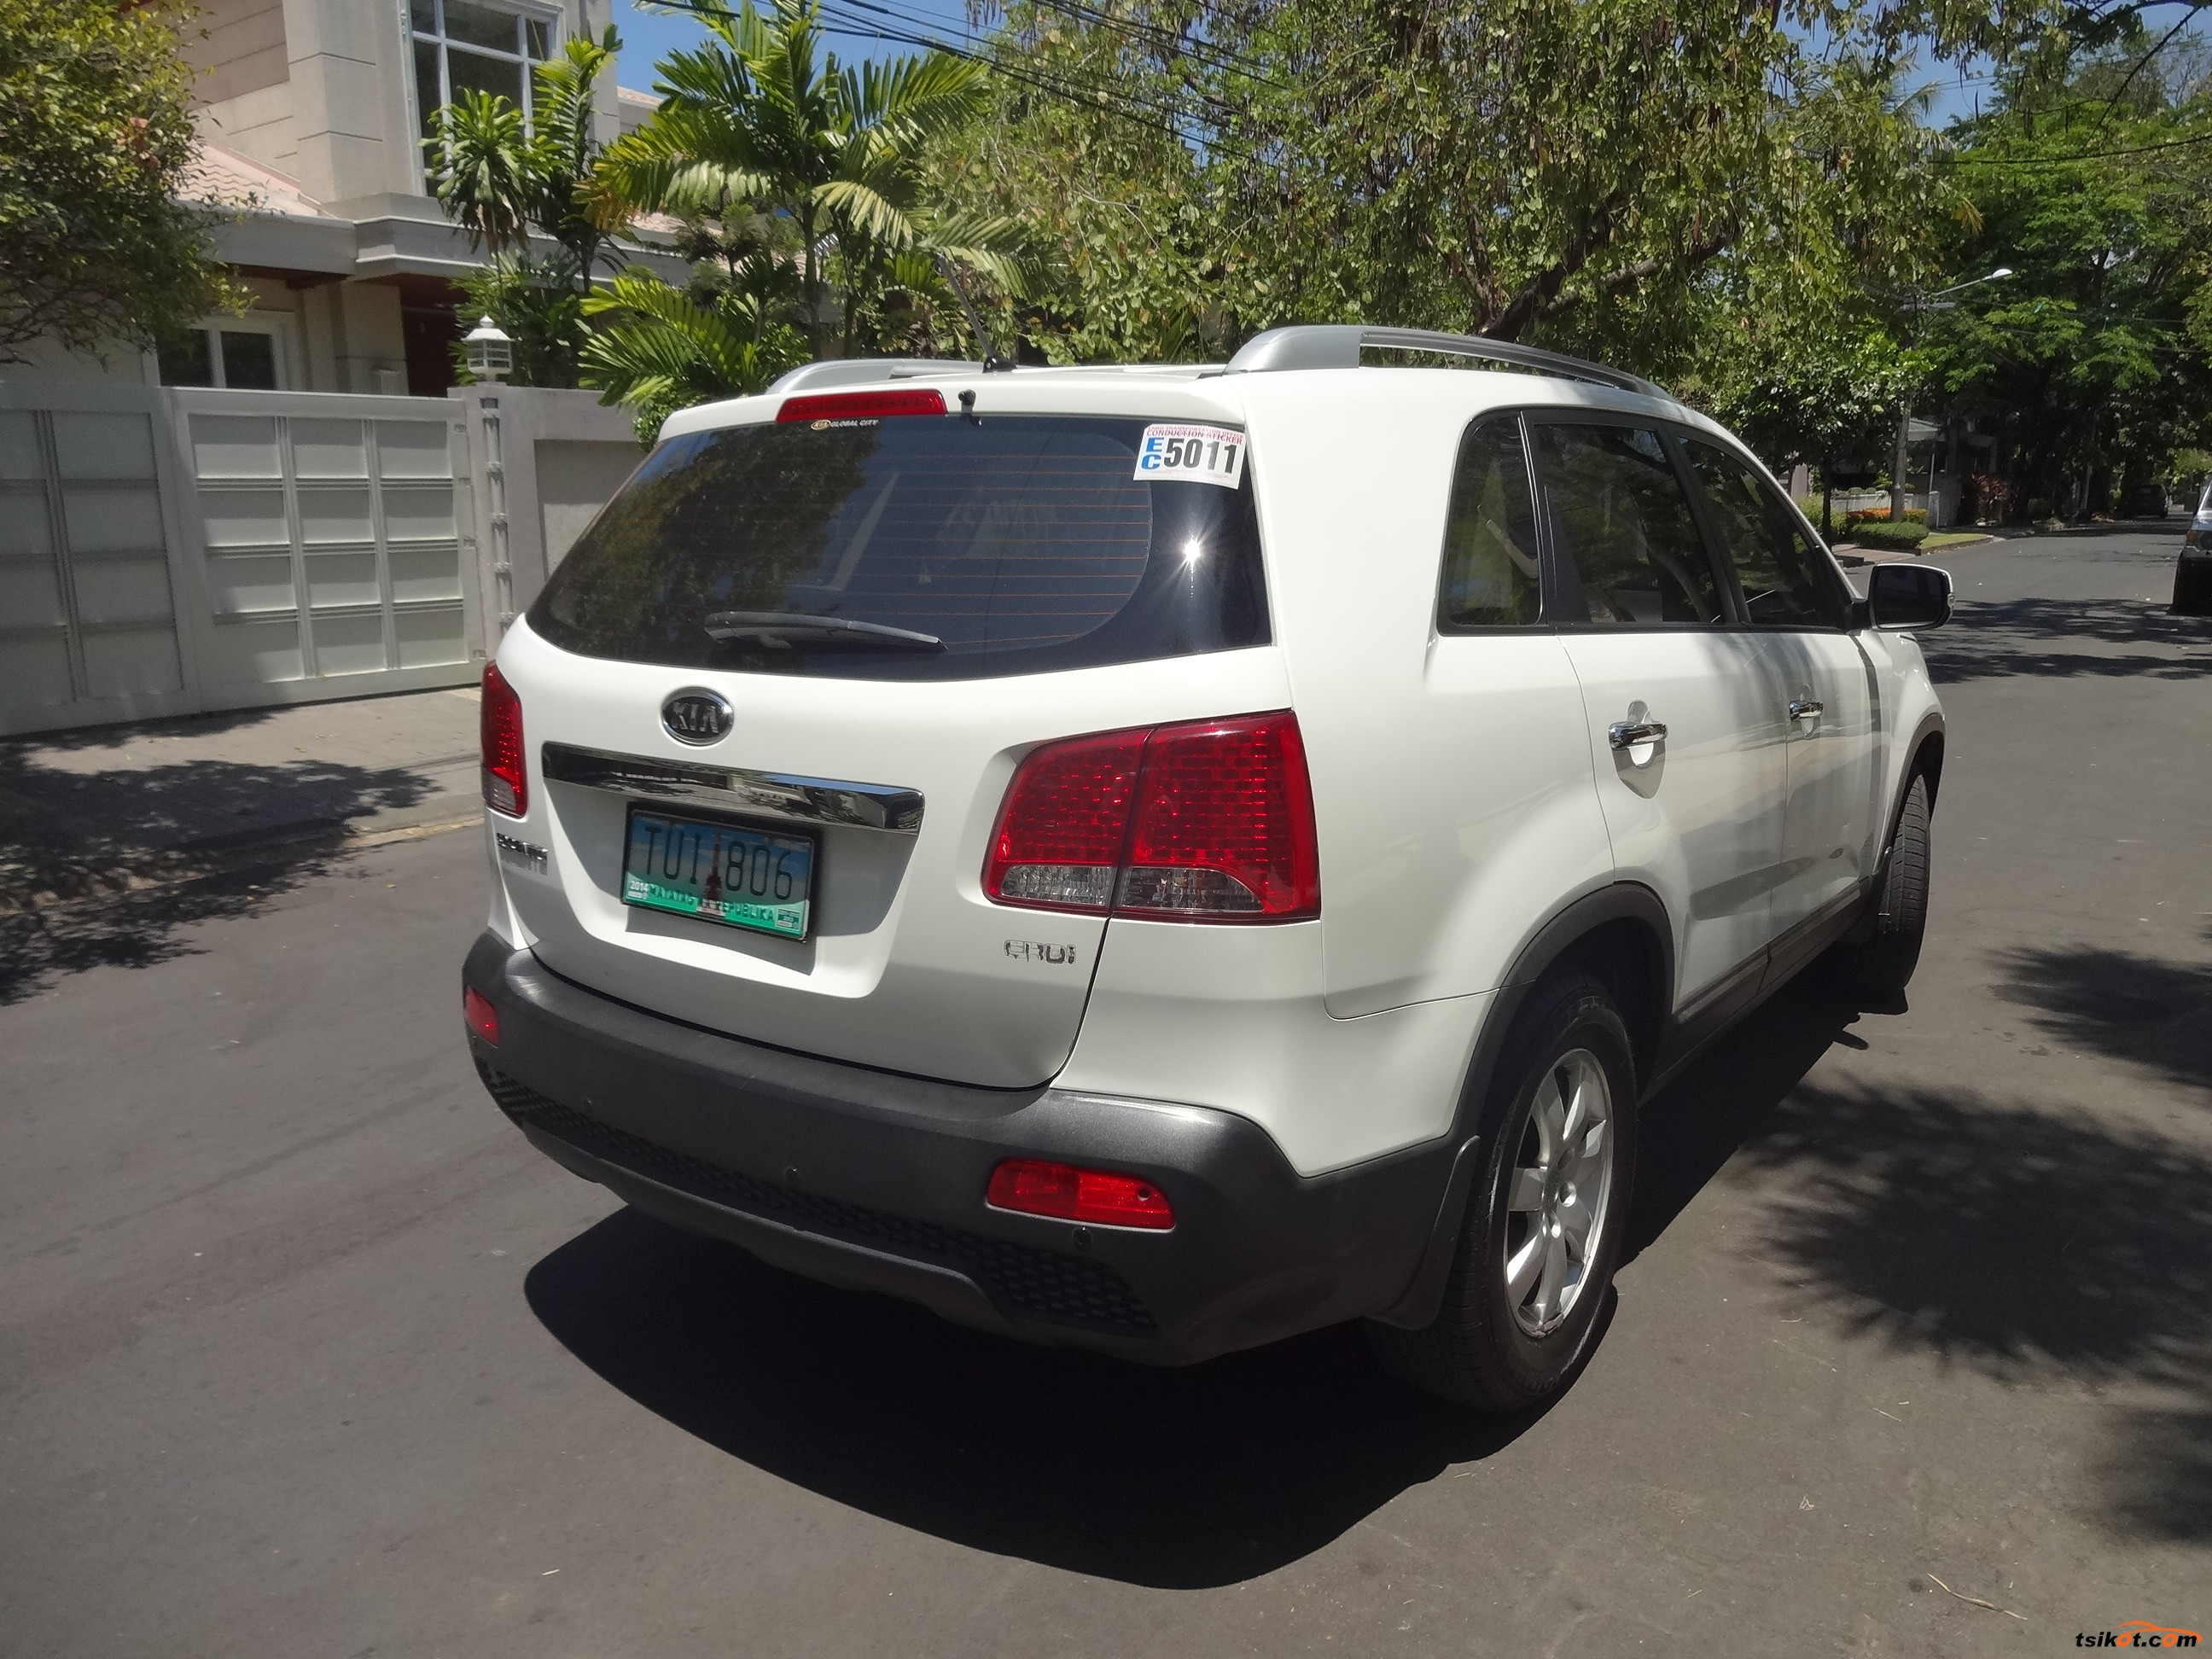 kia sorento 2011 car for sale metro manila. Black Bedroom Furniture Sets. Home Design Ideas